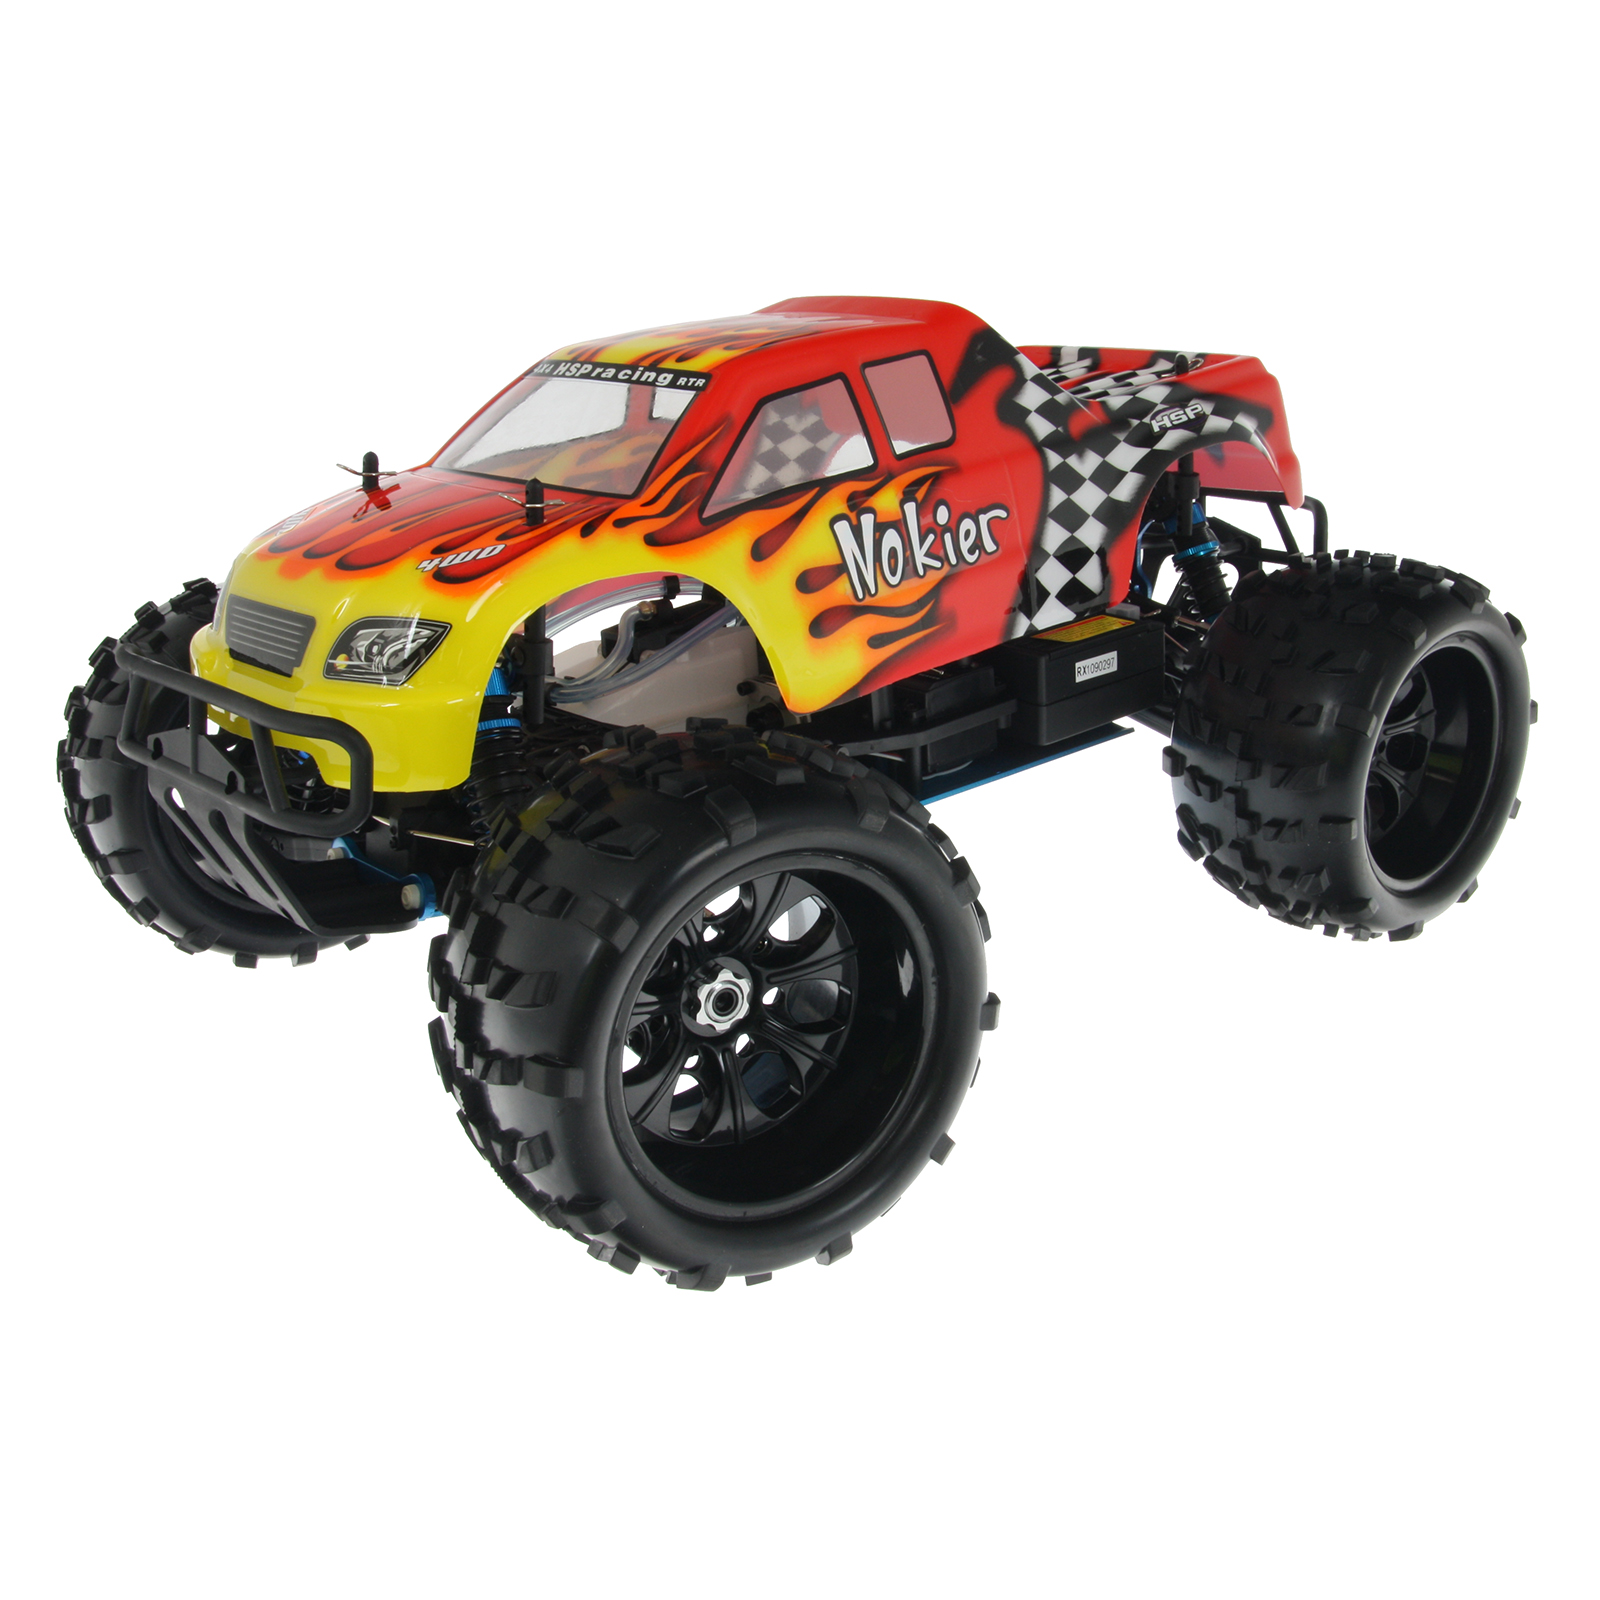 Hsp Rc Truck Nitro Gas Power Off Road Monster Truck 94188: HSP 94862-08314 Red RC Monster Truck At Hobby Warehouse